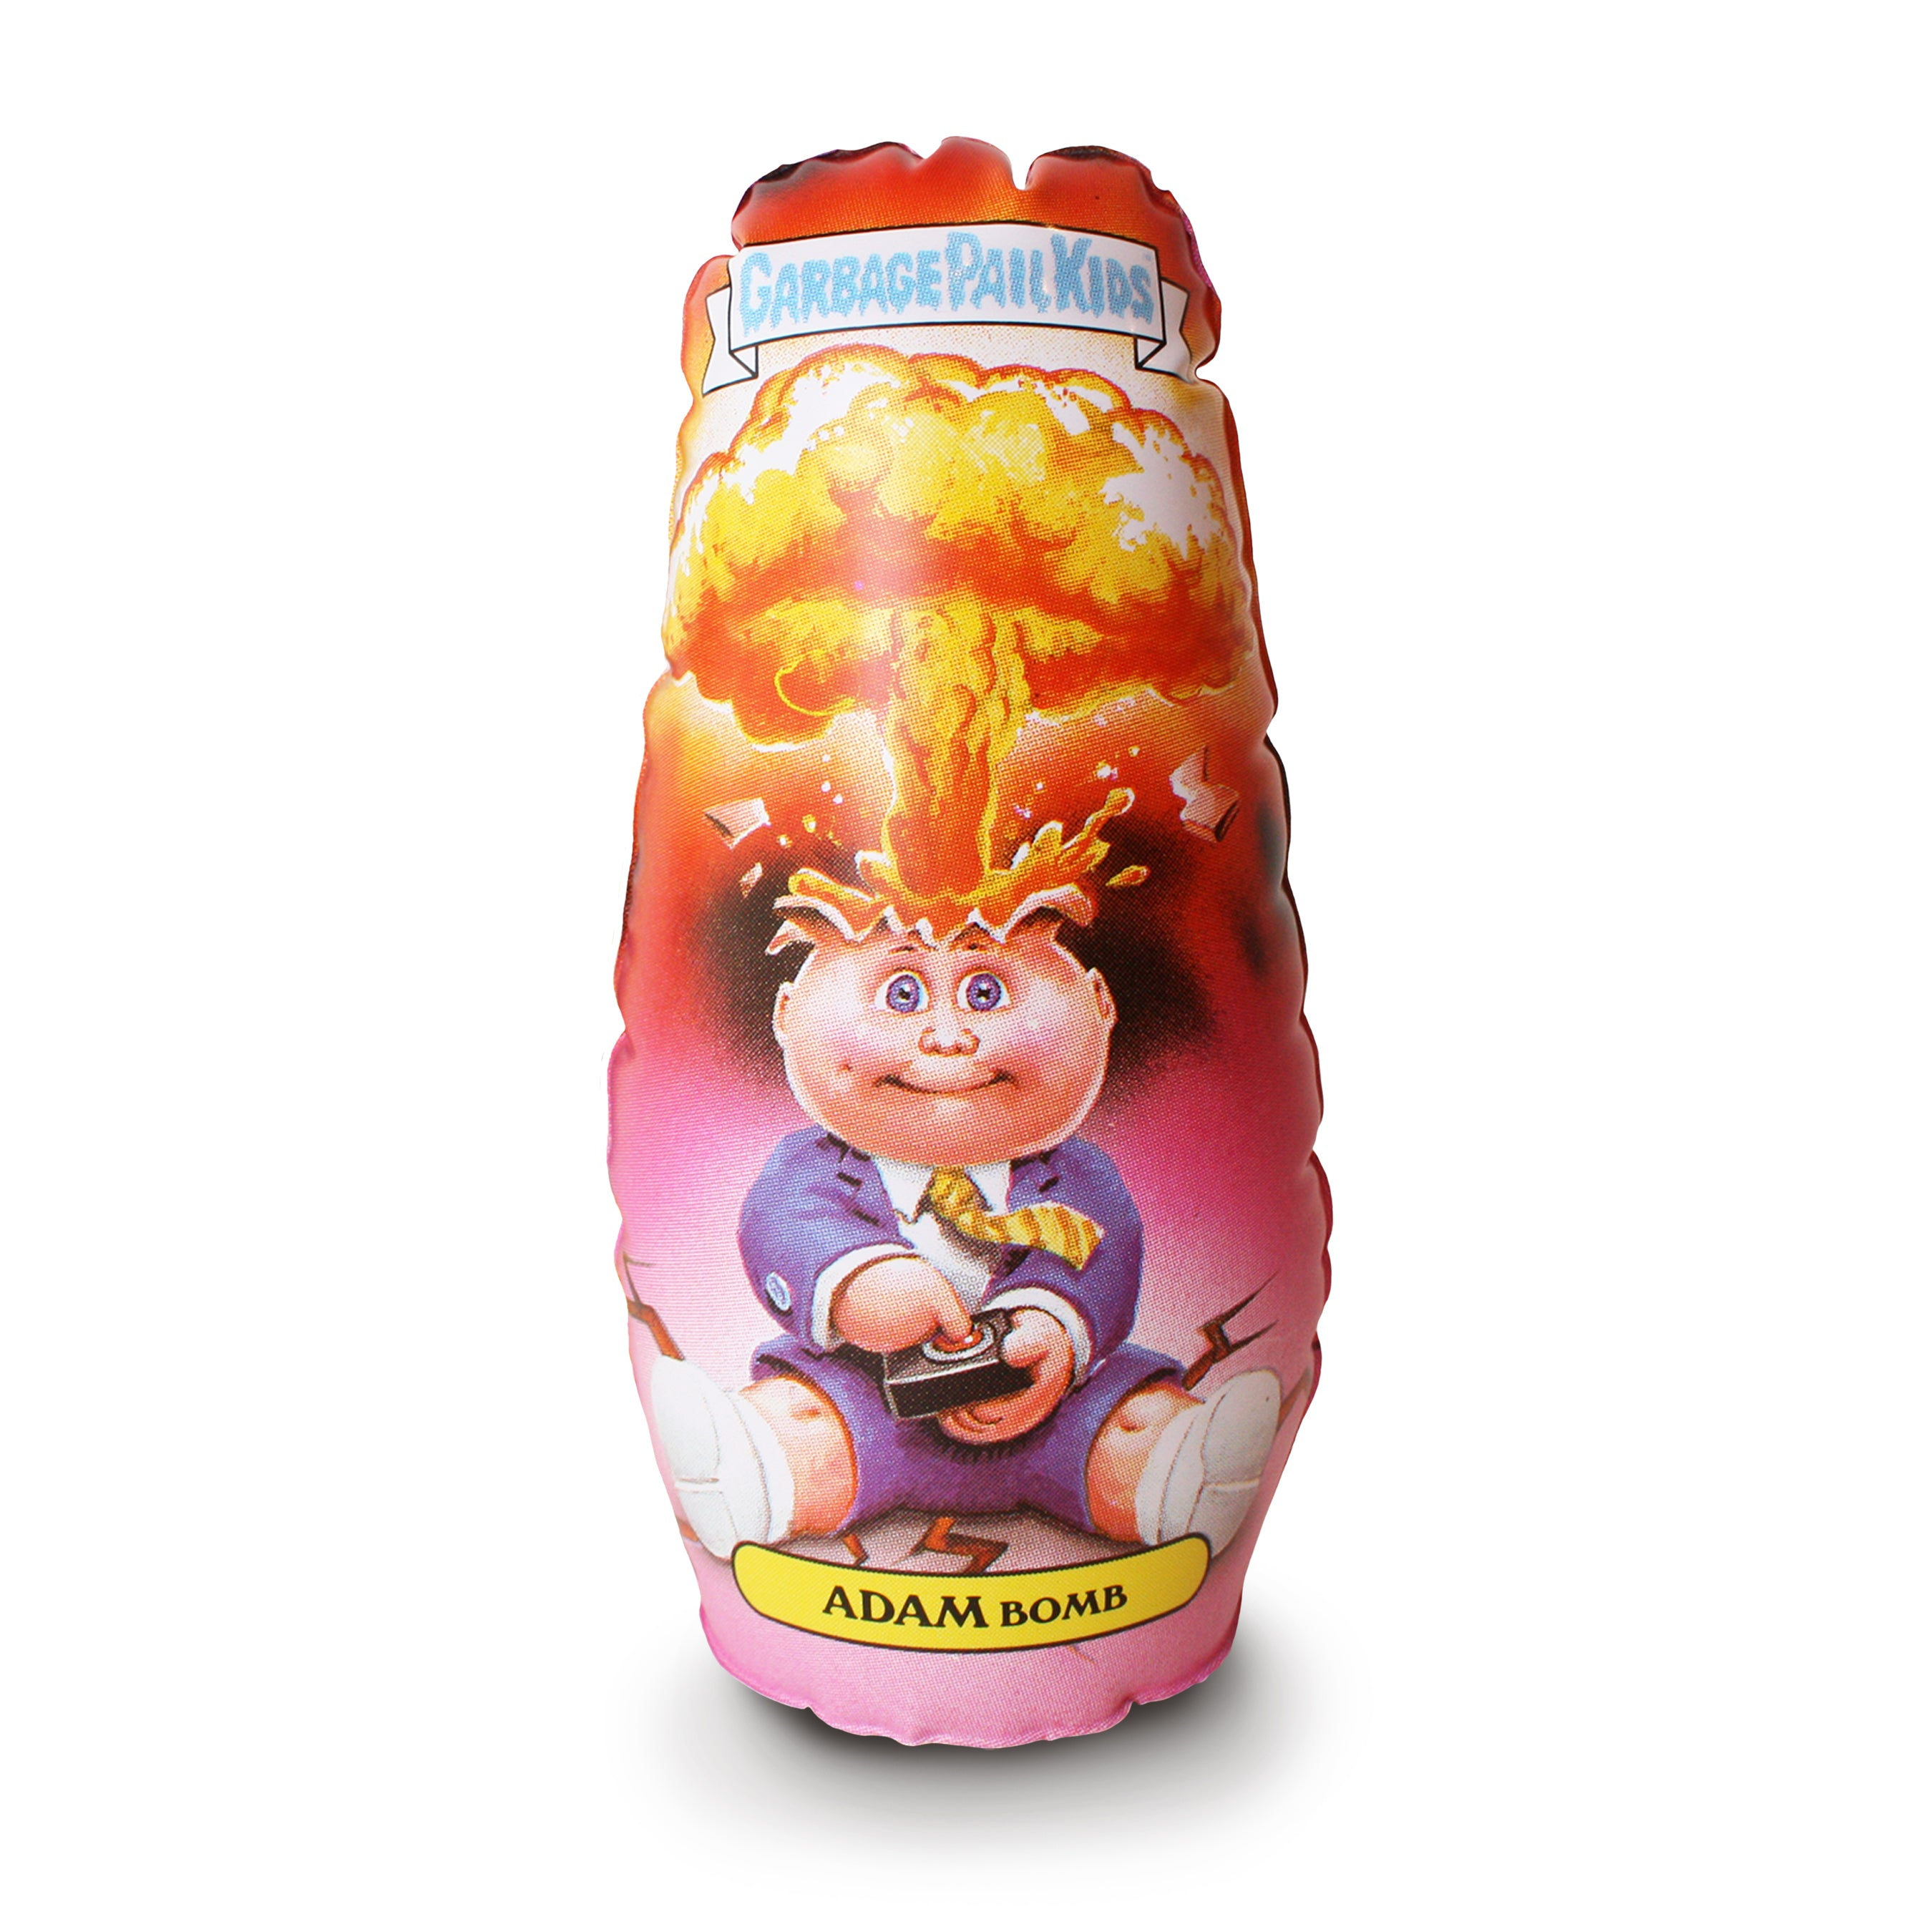 Garbage Pail Kids® Adam Bomb Mini Bop Bag